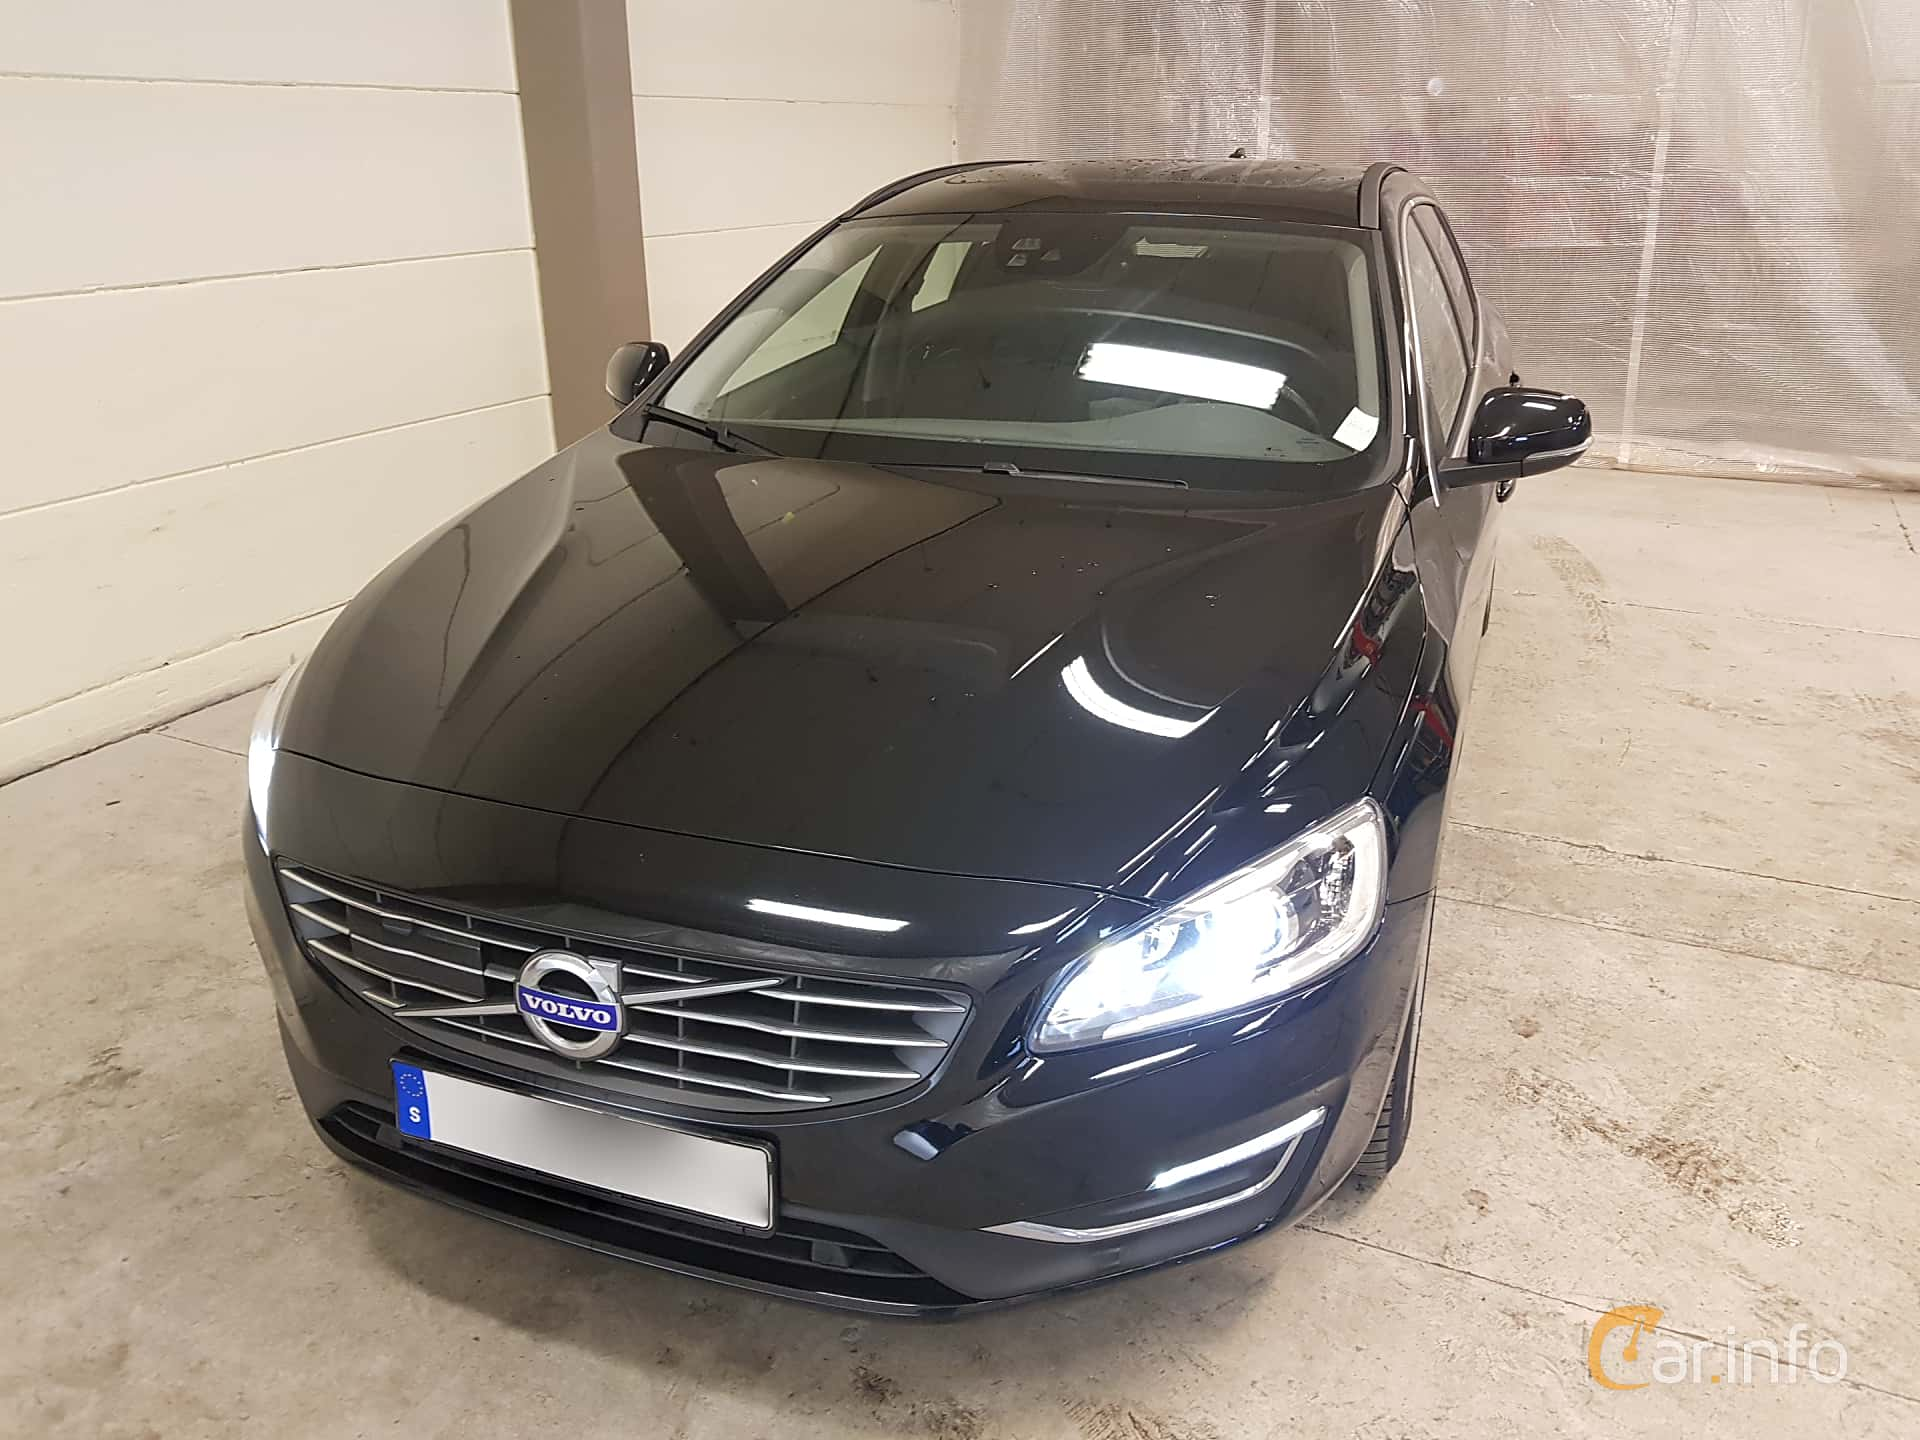 Volvo V60 D3 Geartronic, 150hp, 2017